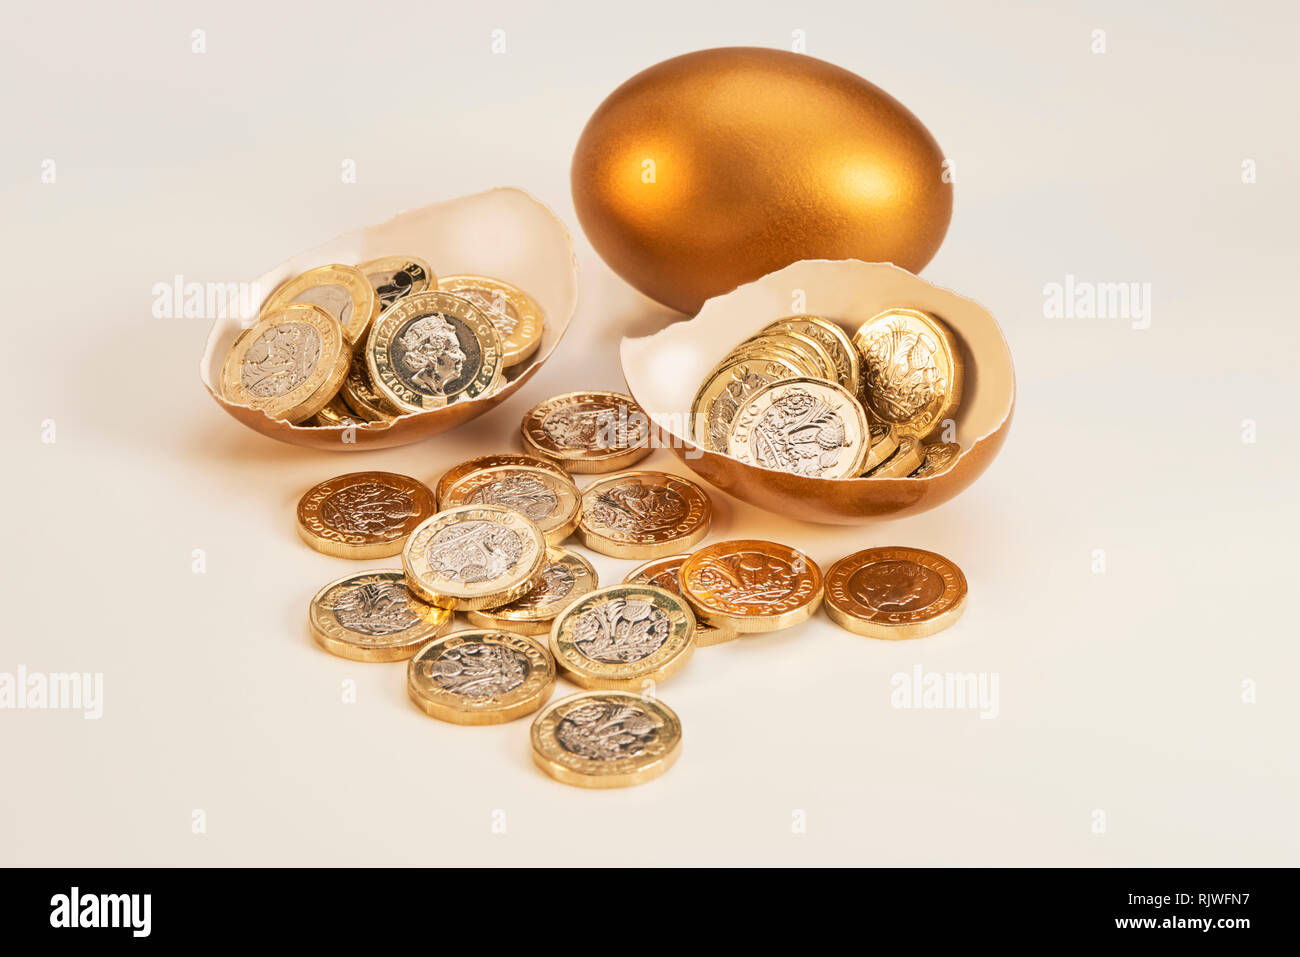 Golden Nest Egg with Shinny Pound Coins Stock Photo